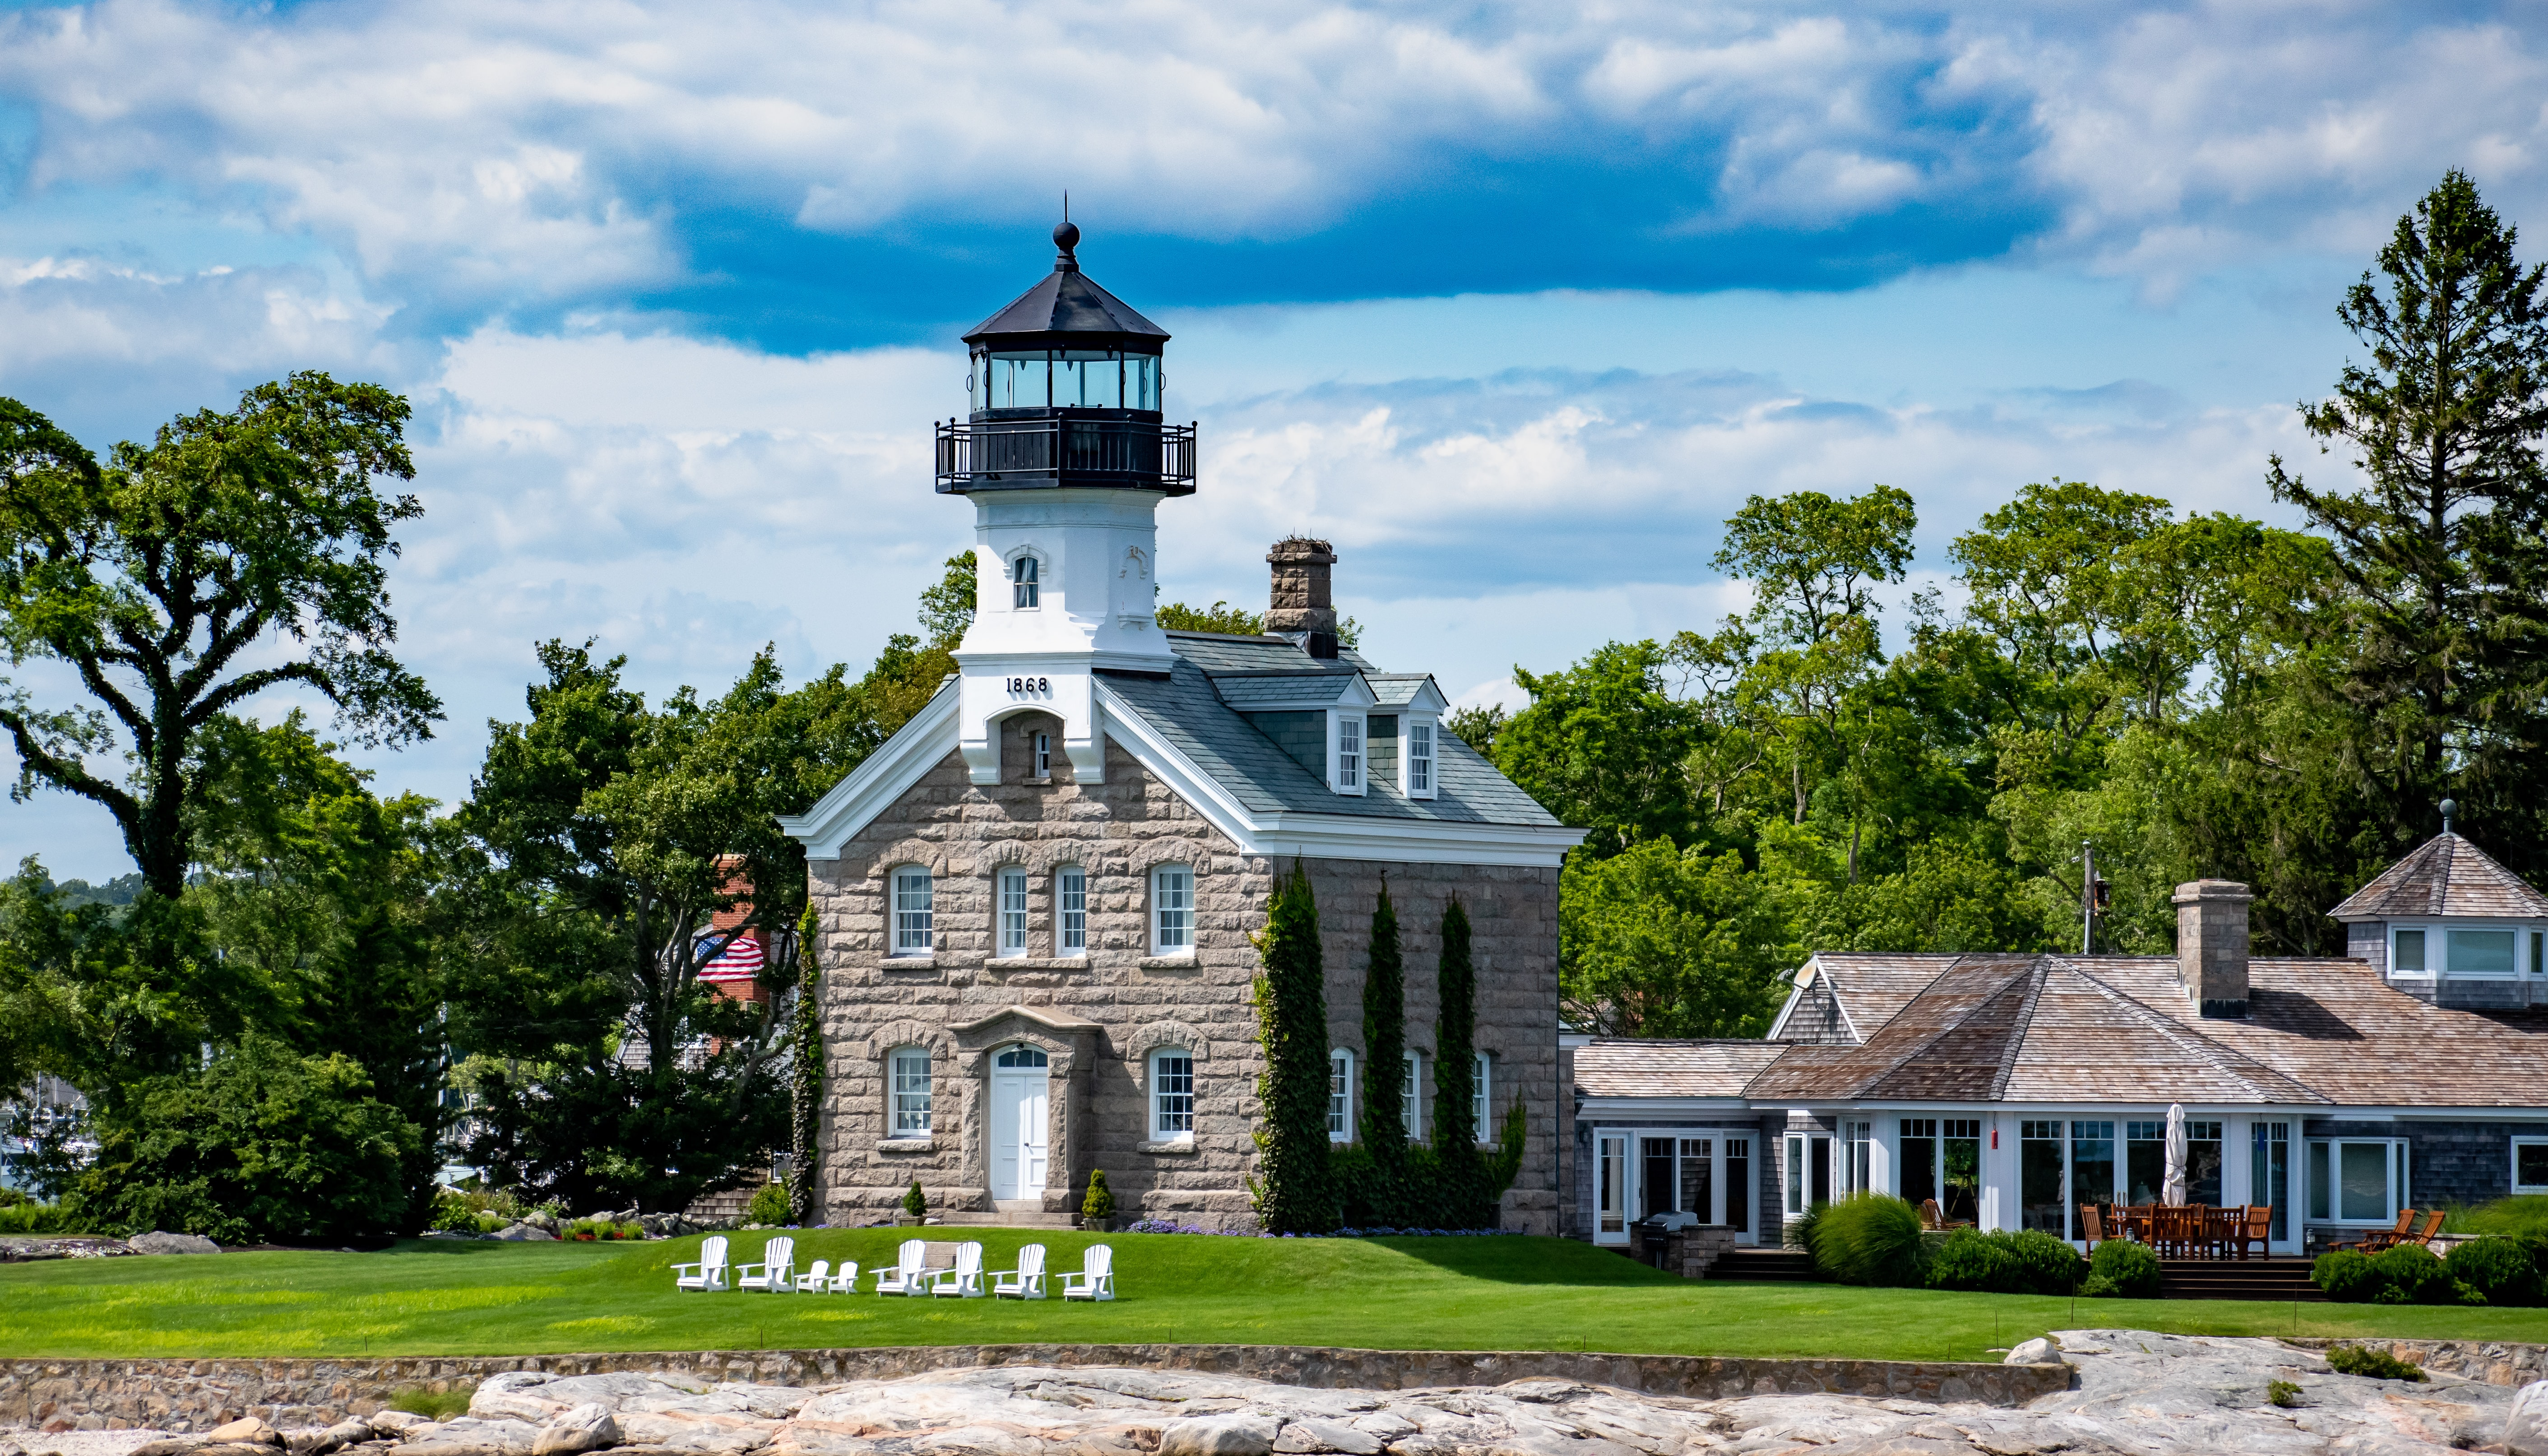 Morgan Point Lighthouse locatedat the mouth of the Mystic River as it empties into Fisher Island Sound in Connecticut.